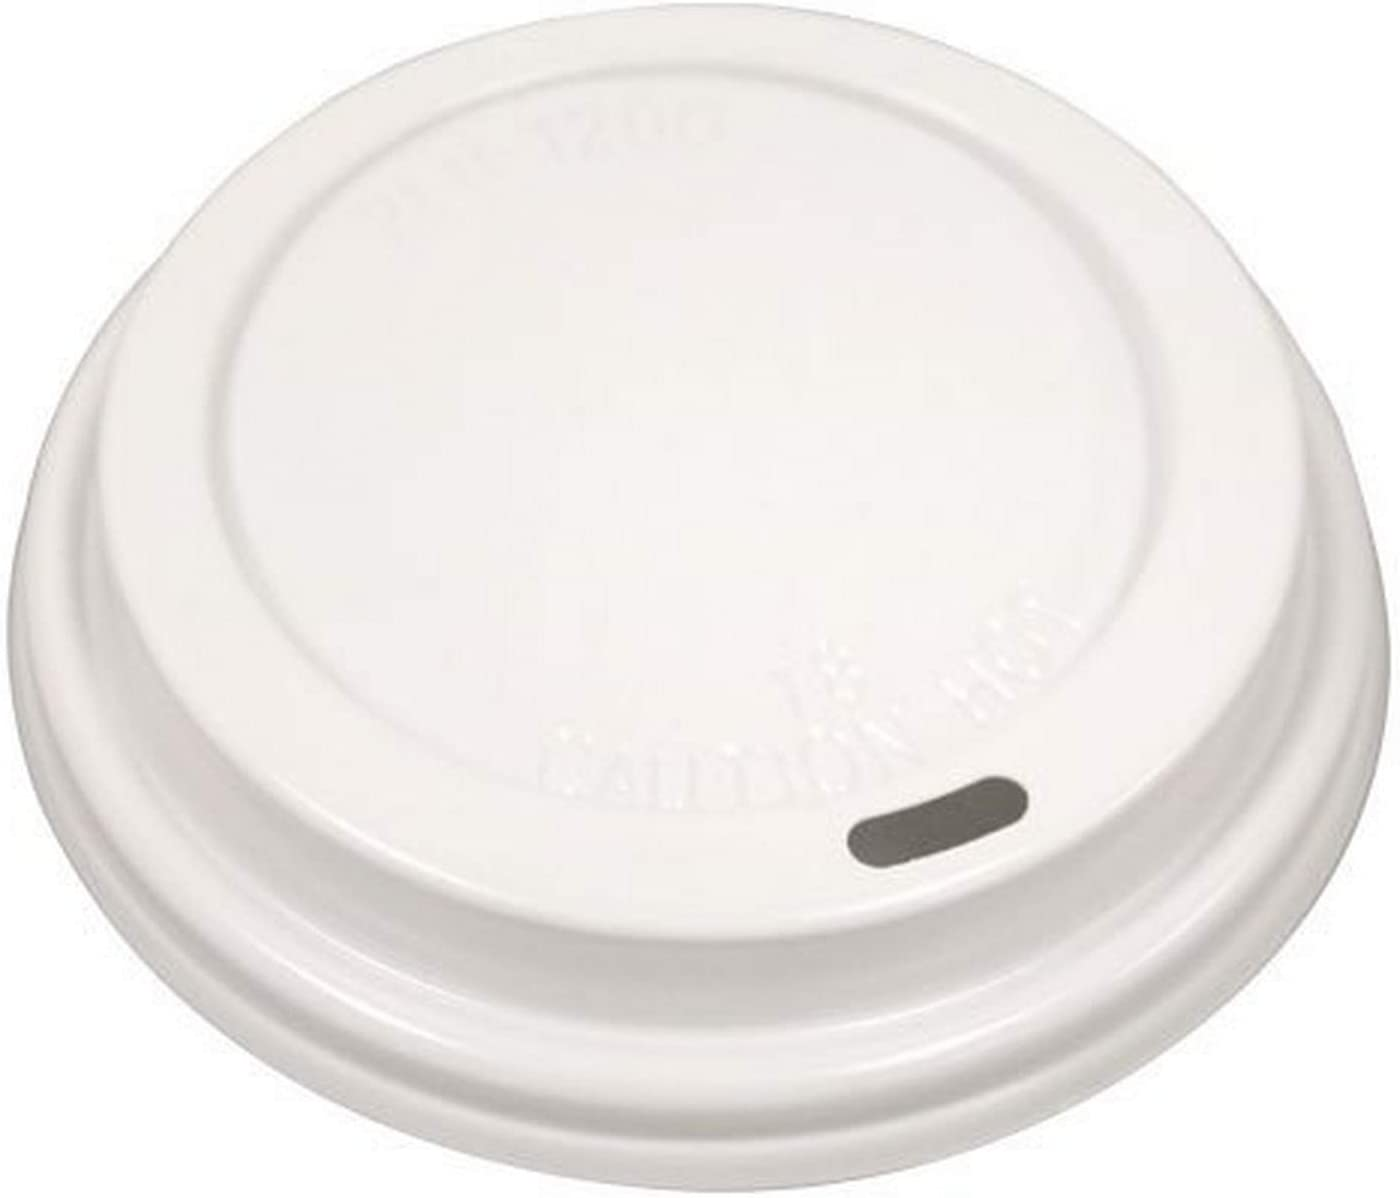 Nicole Home Collection Coffee 12 & 16 oz. Hot/Cold Cups | White | Pack of 20 Dome Lid